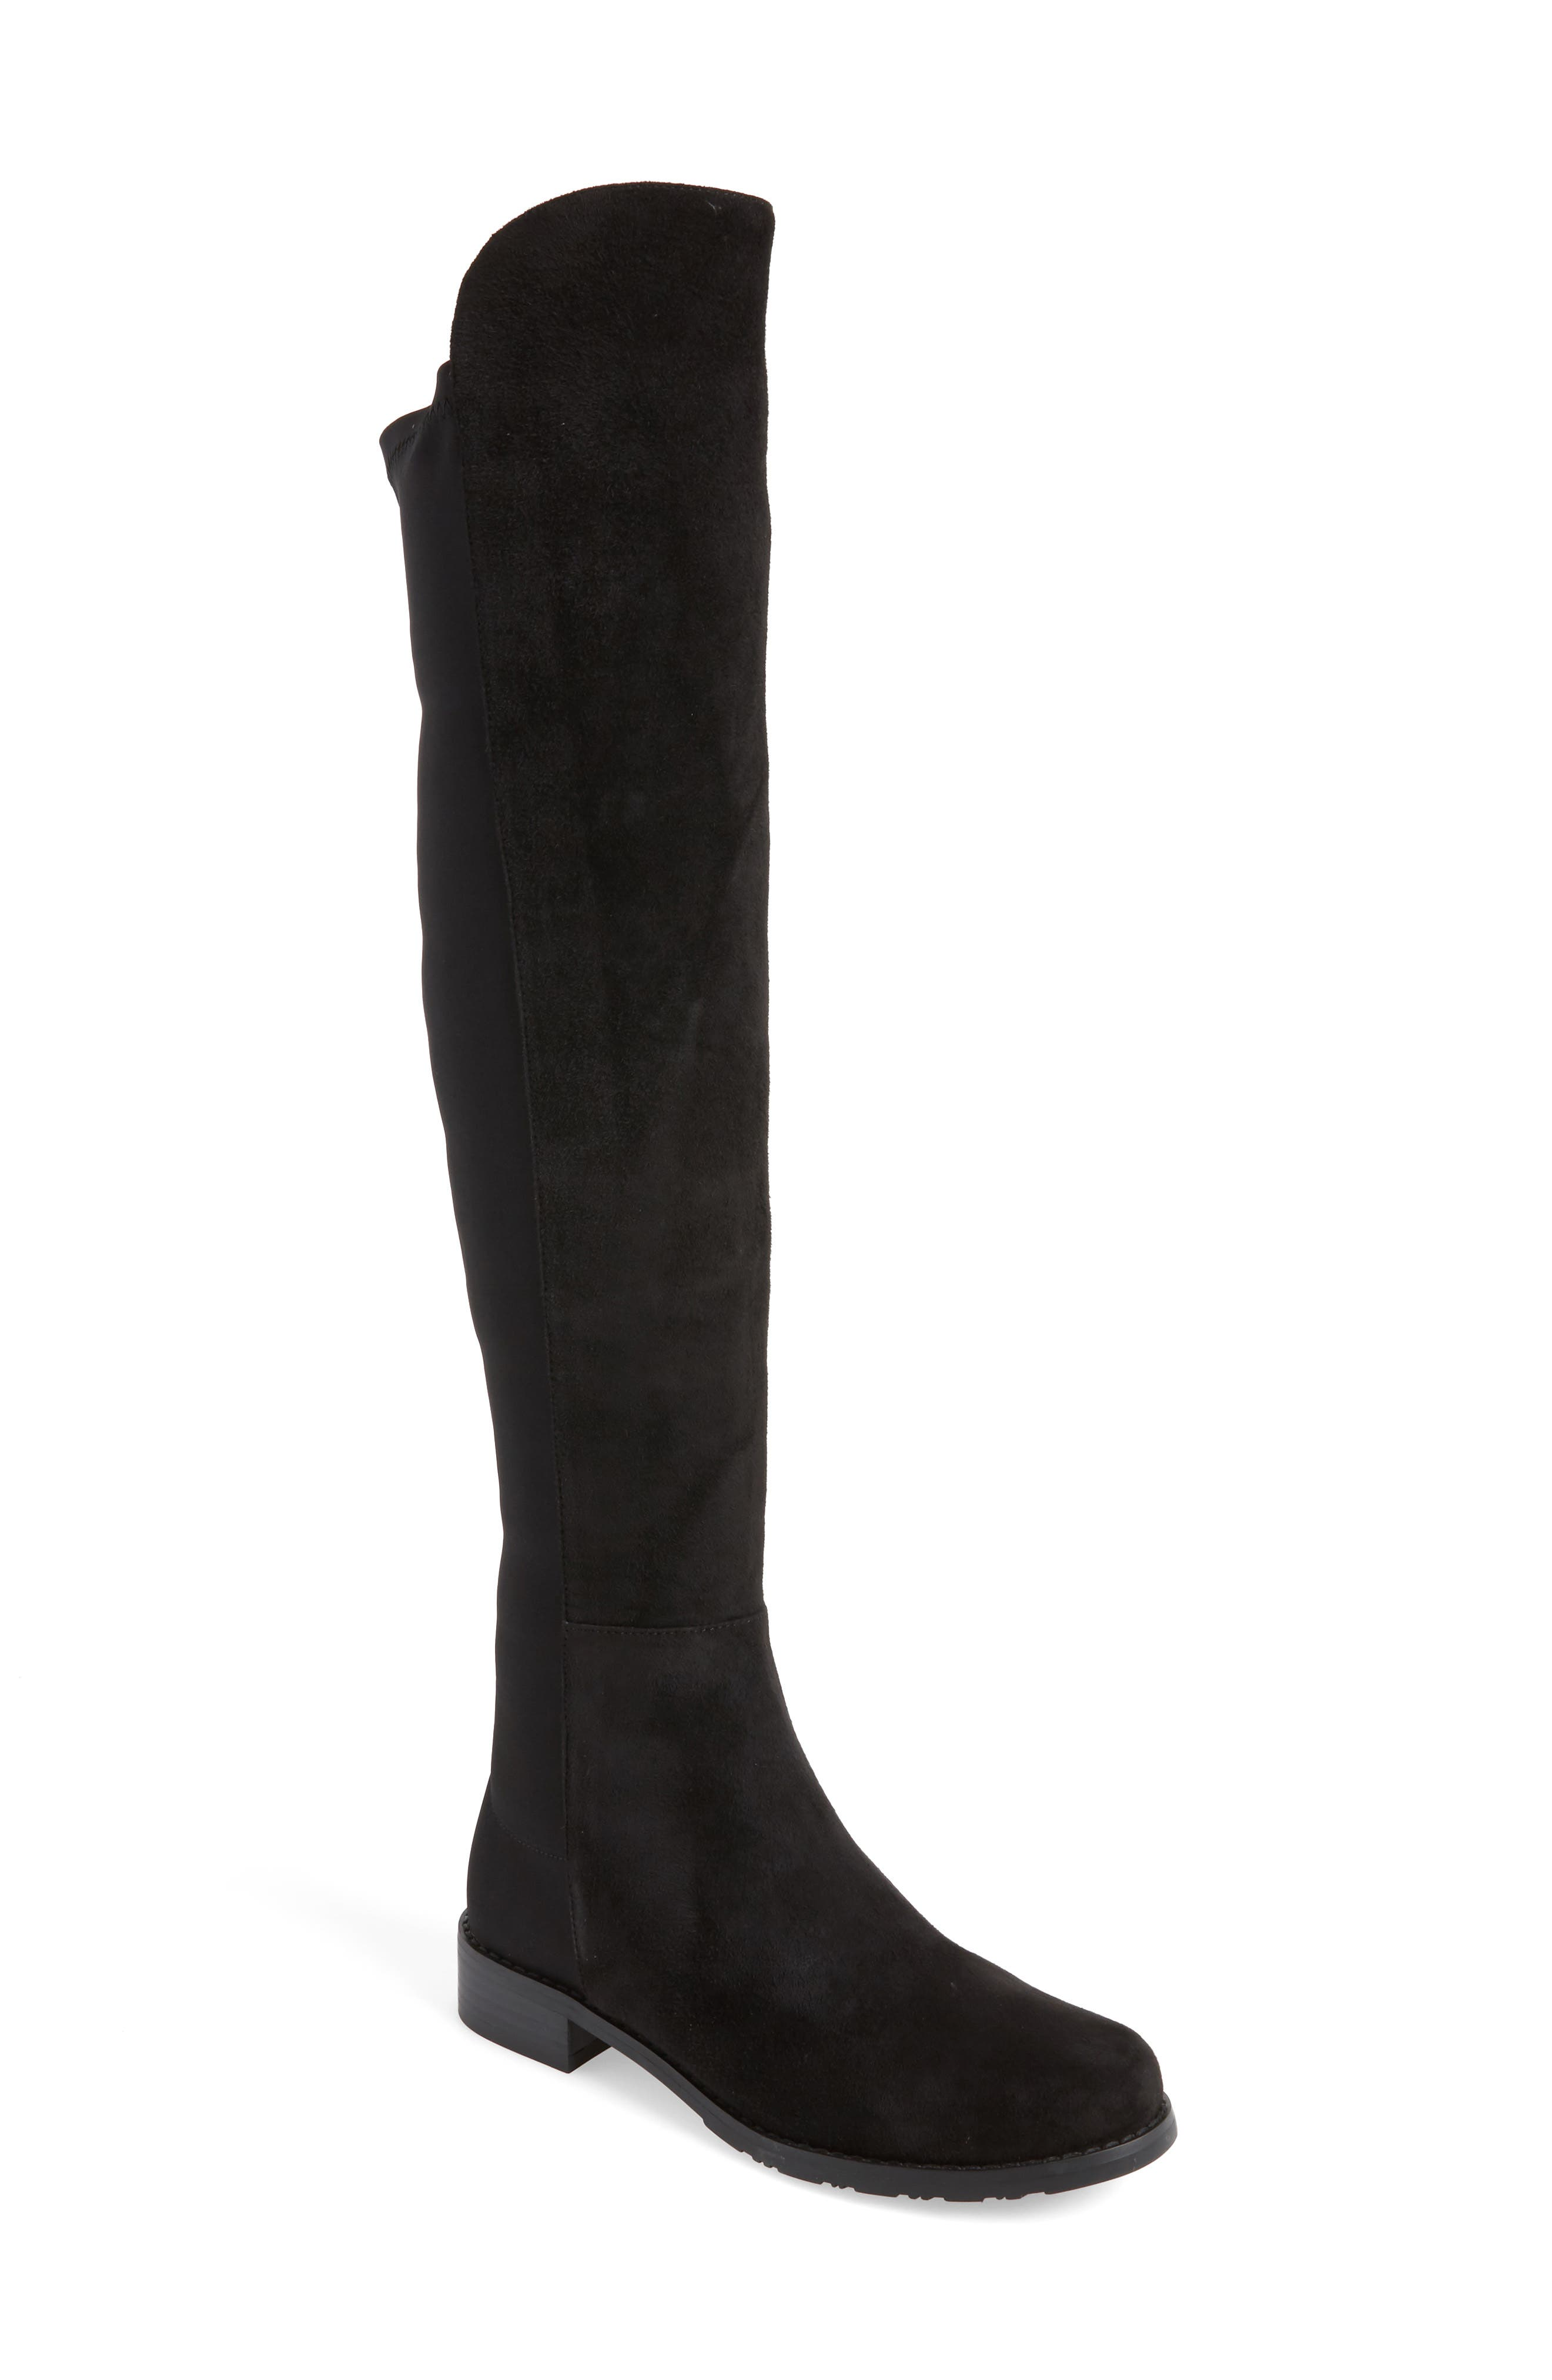 Panache Tall Boot,                         Main,                         color, Black Suede